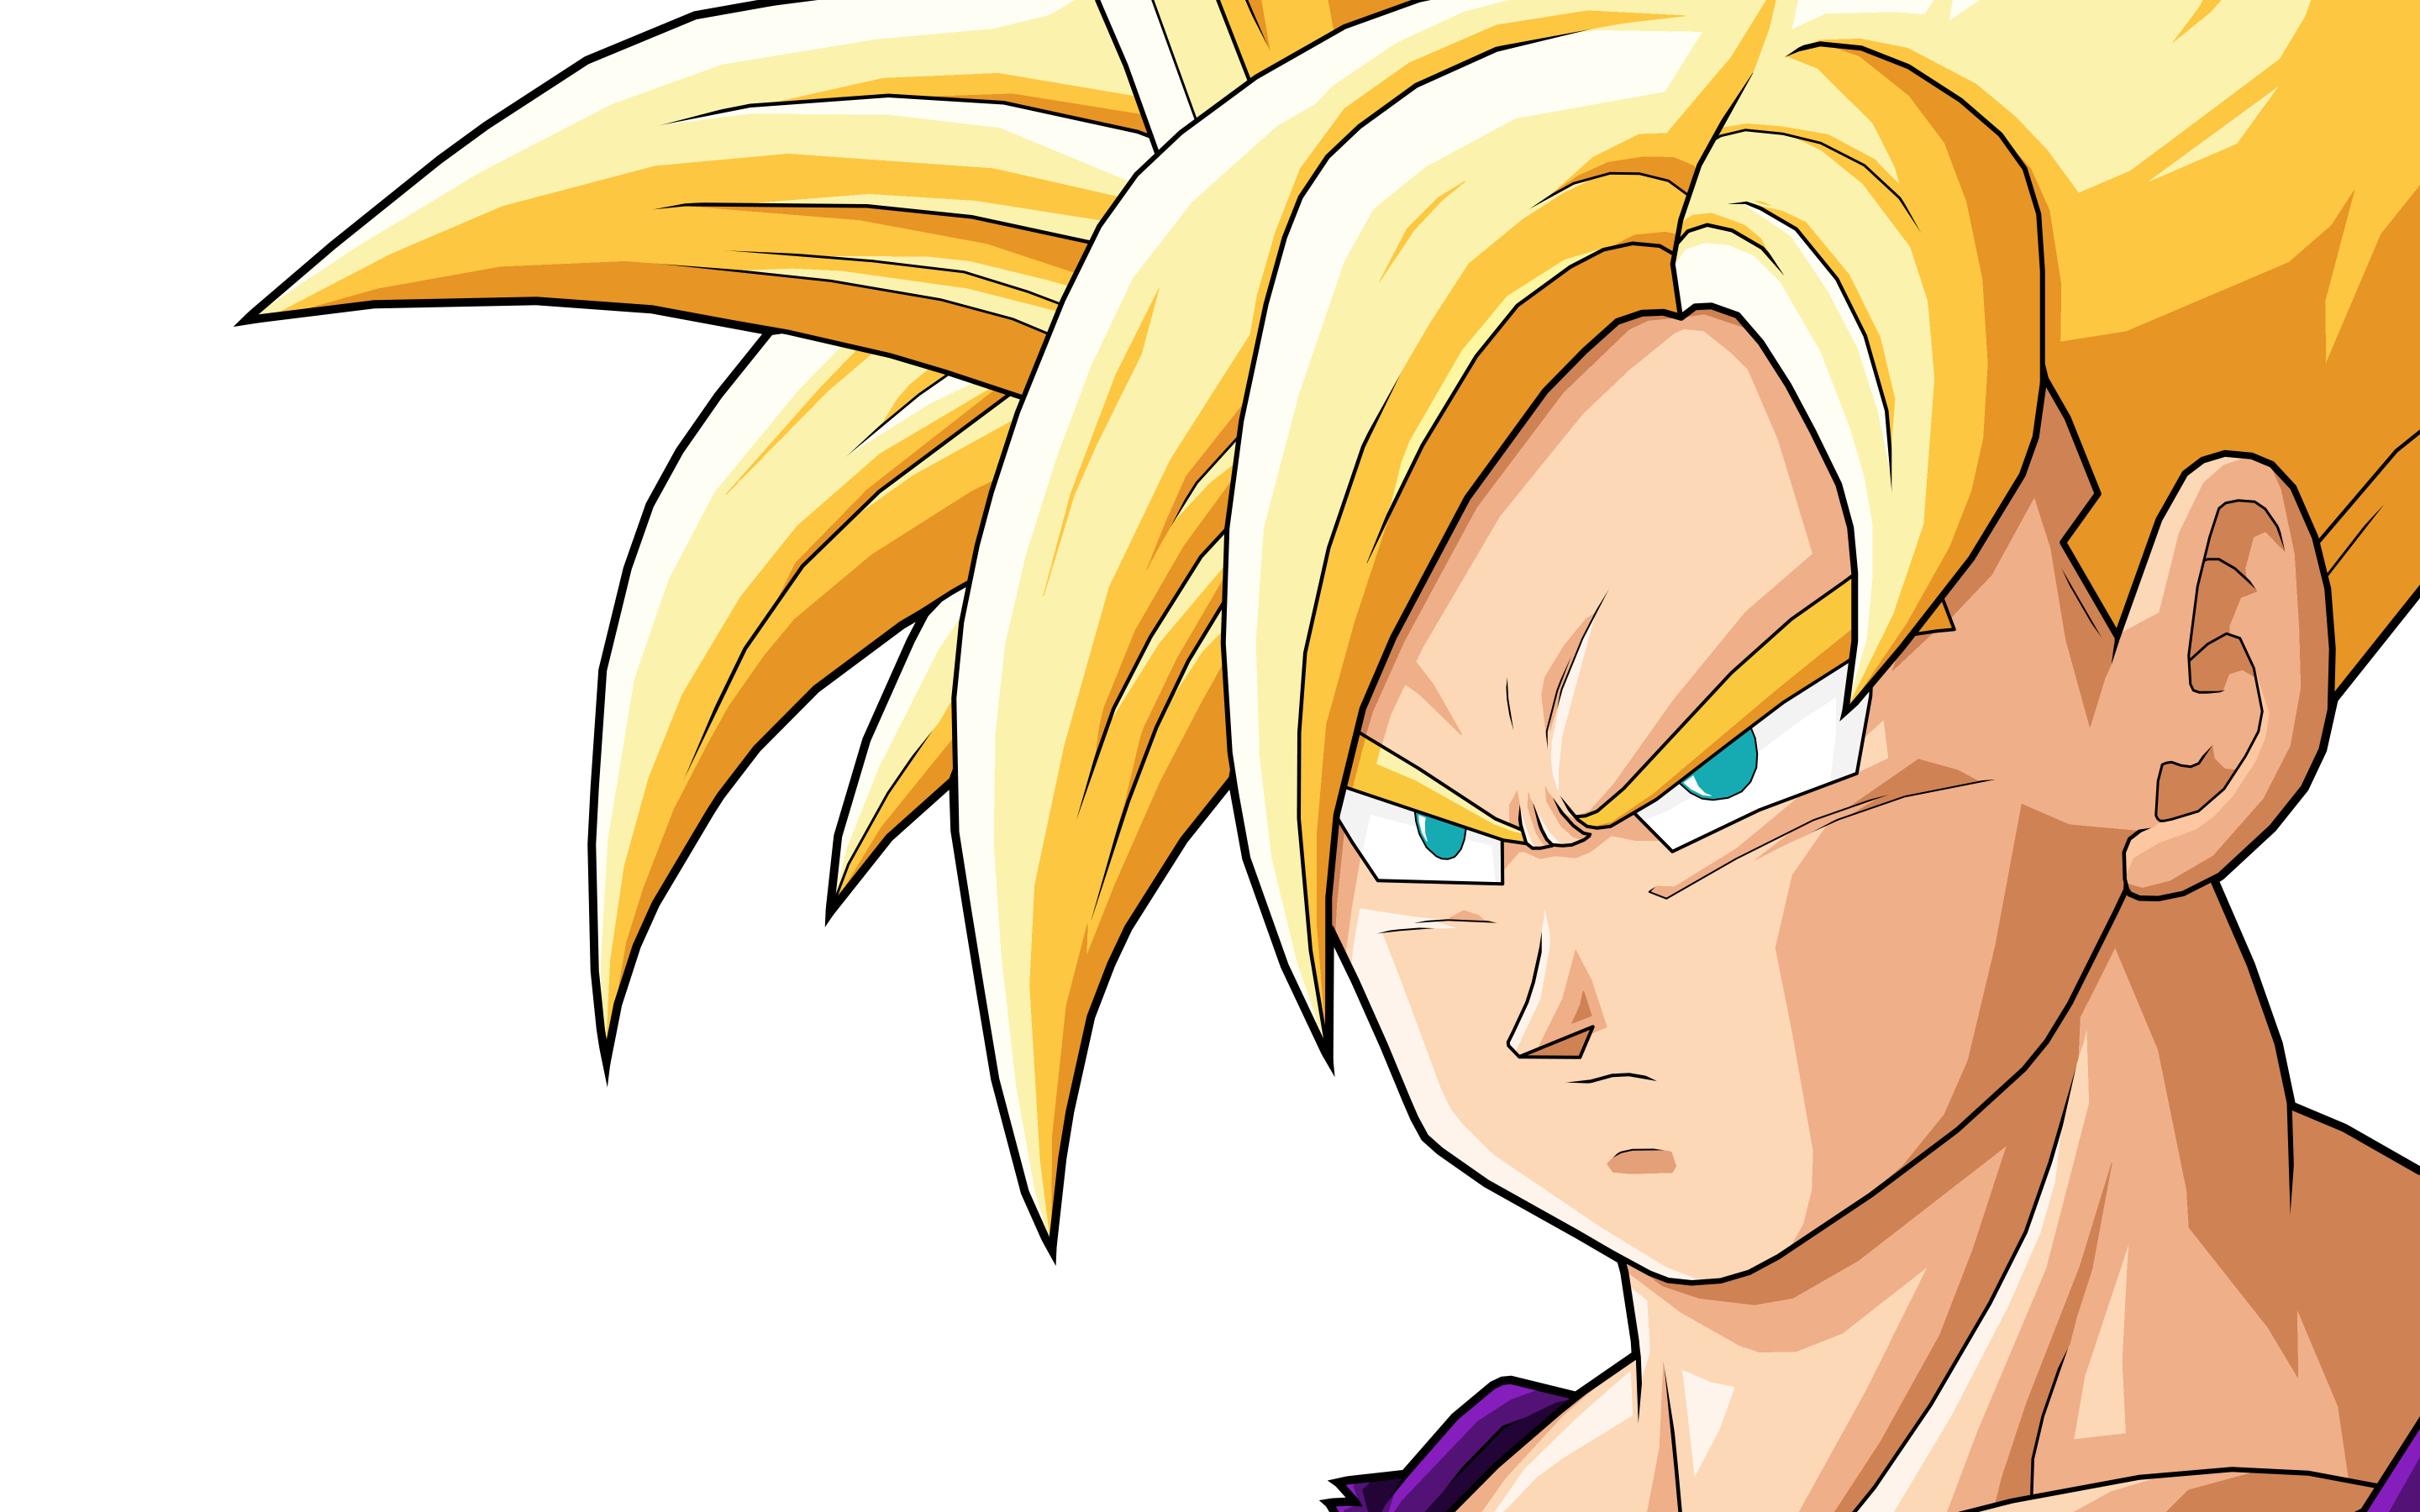 Son goku dragon ball z wallpaper 2880x1800 19431 - Dragon ball super background music mp3 download ...